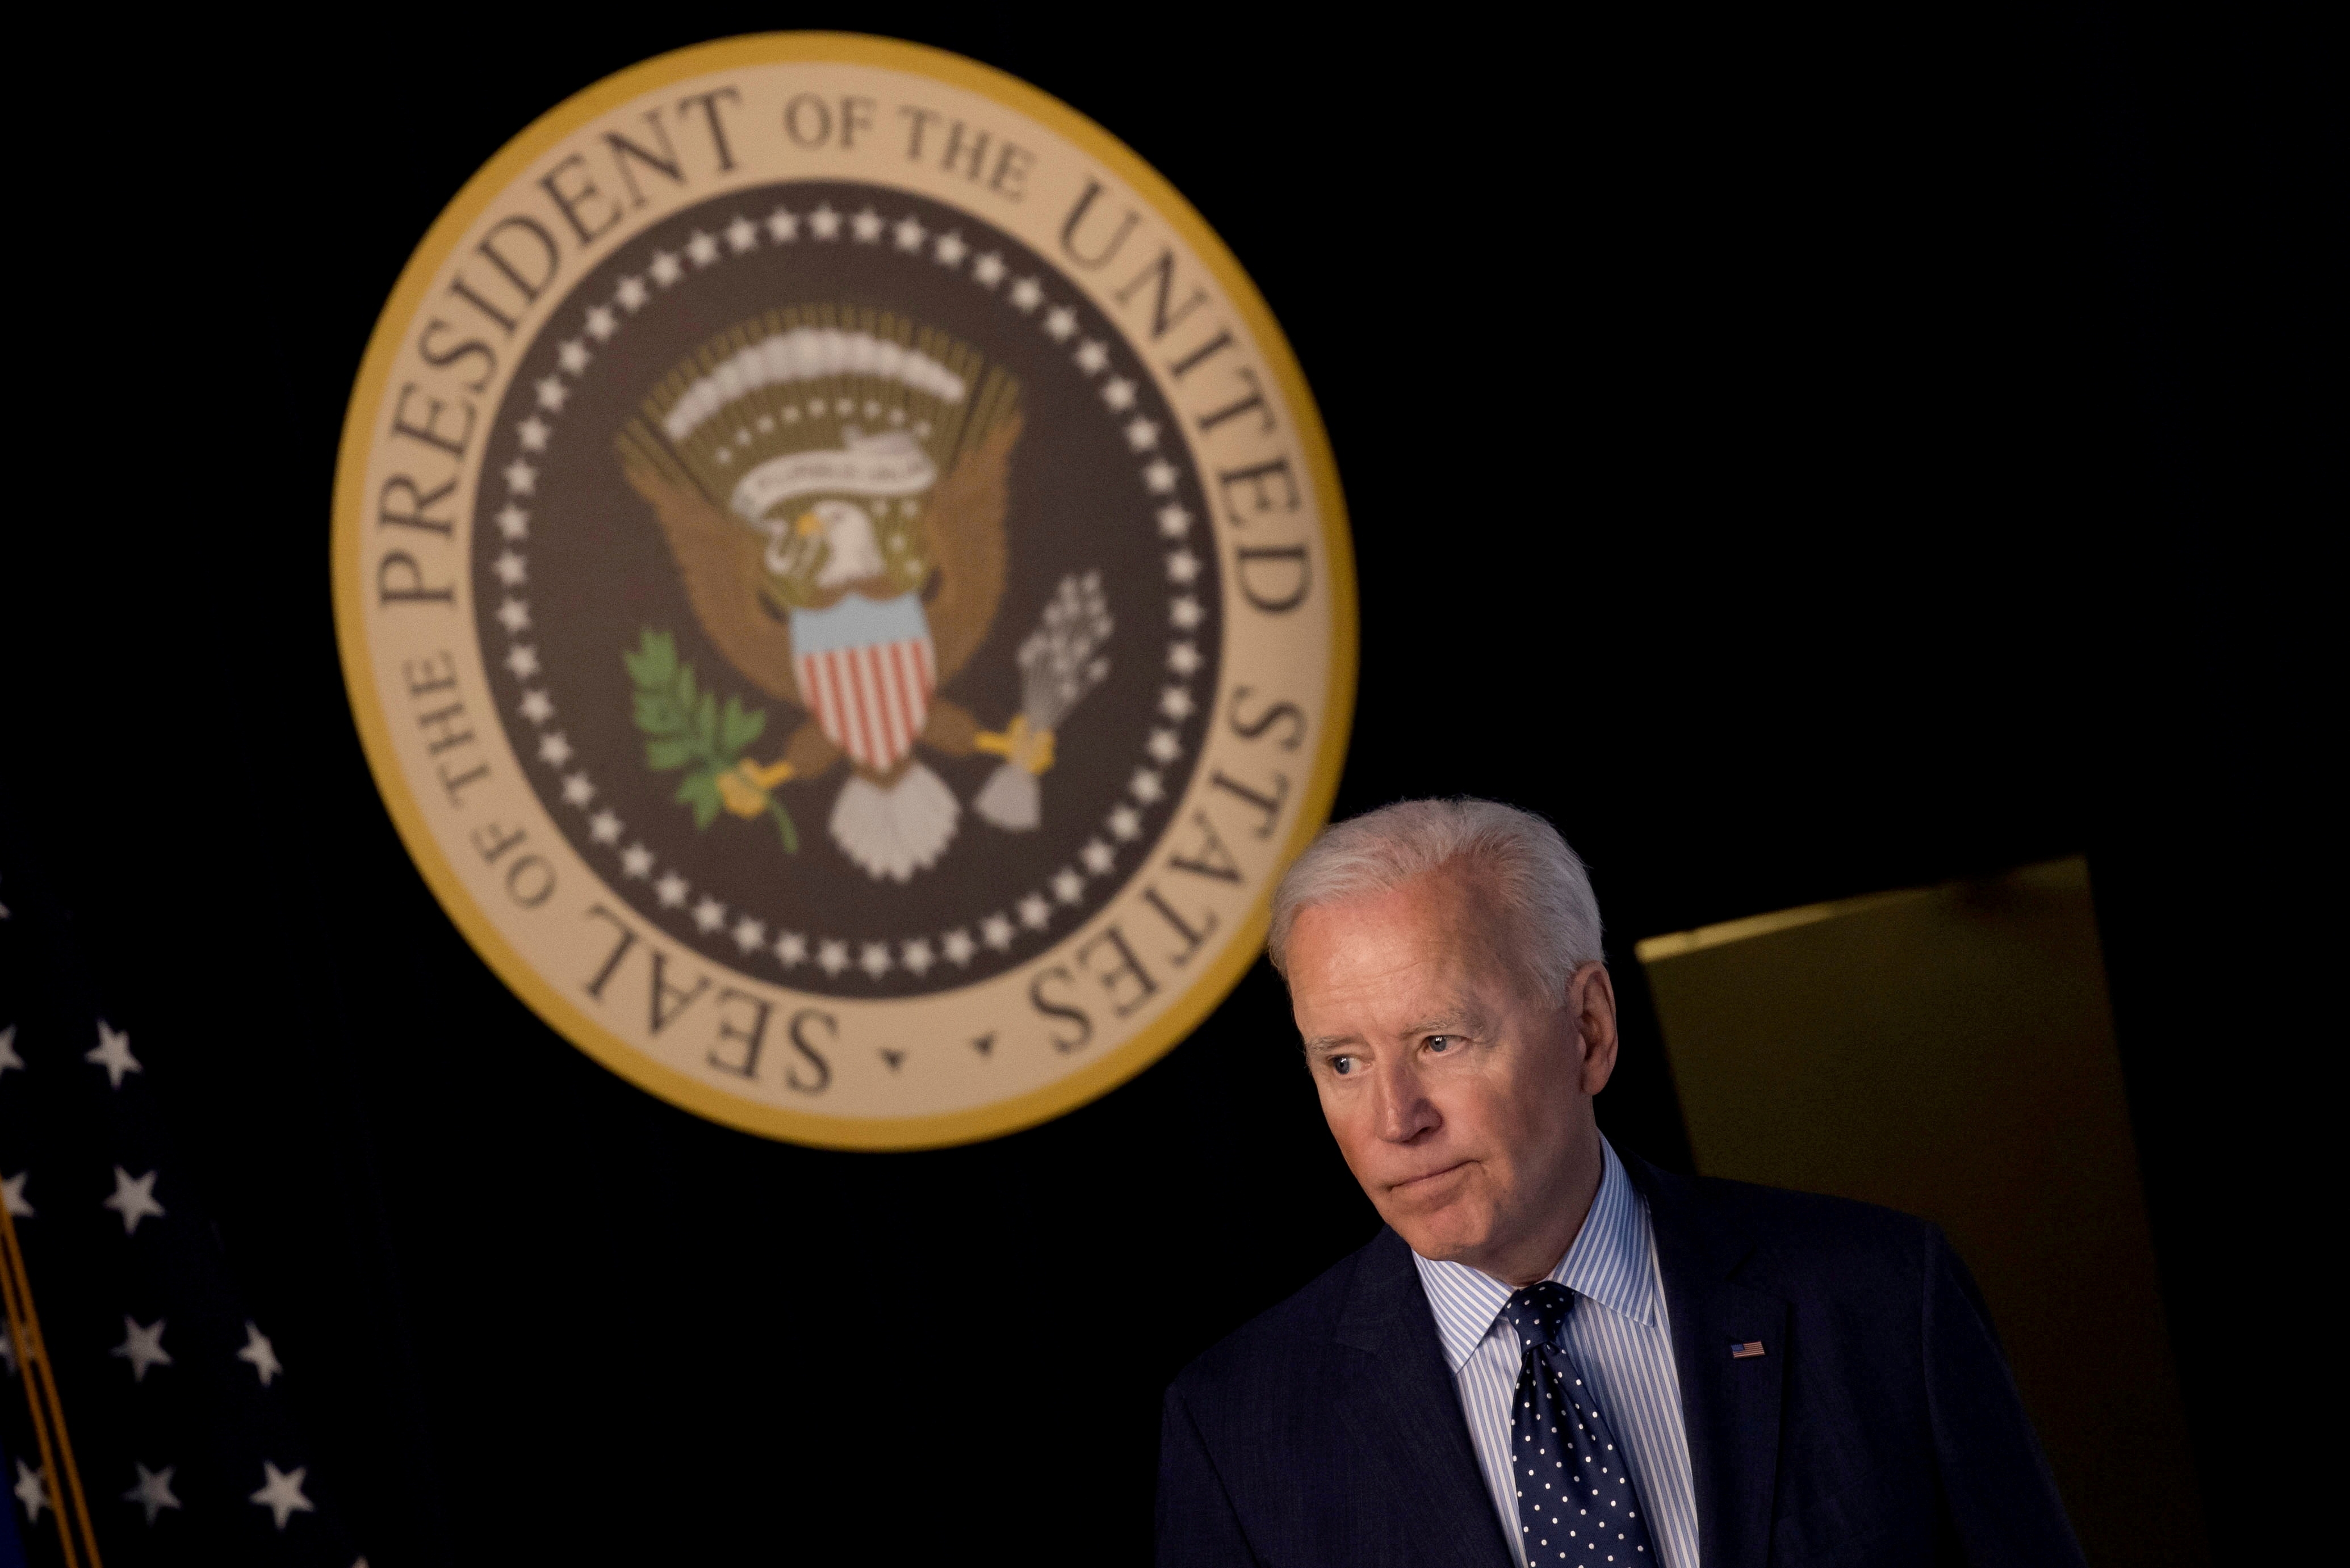 U.S. President  Joe Biden departs after delivering an update on his administration's coronavirus disease (COVID-19) response in the Eisenhower Executive Office Building's South Court Auditorium at the White House in Washington, U.S., June 2, 2021. REUTERS/Carlos Barria